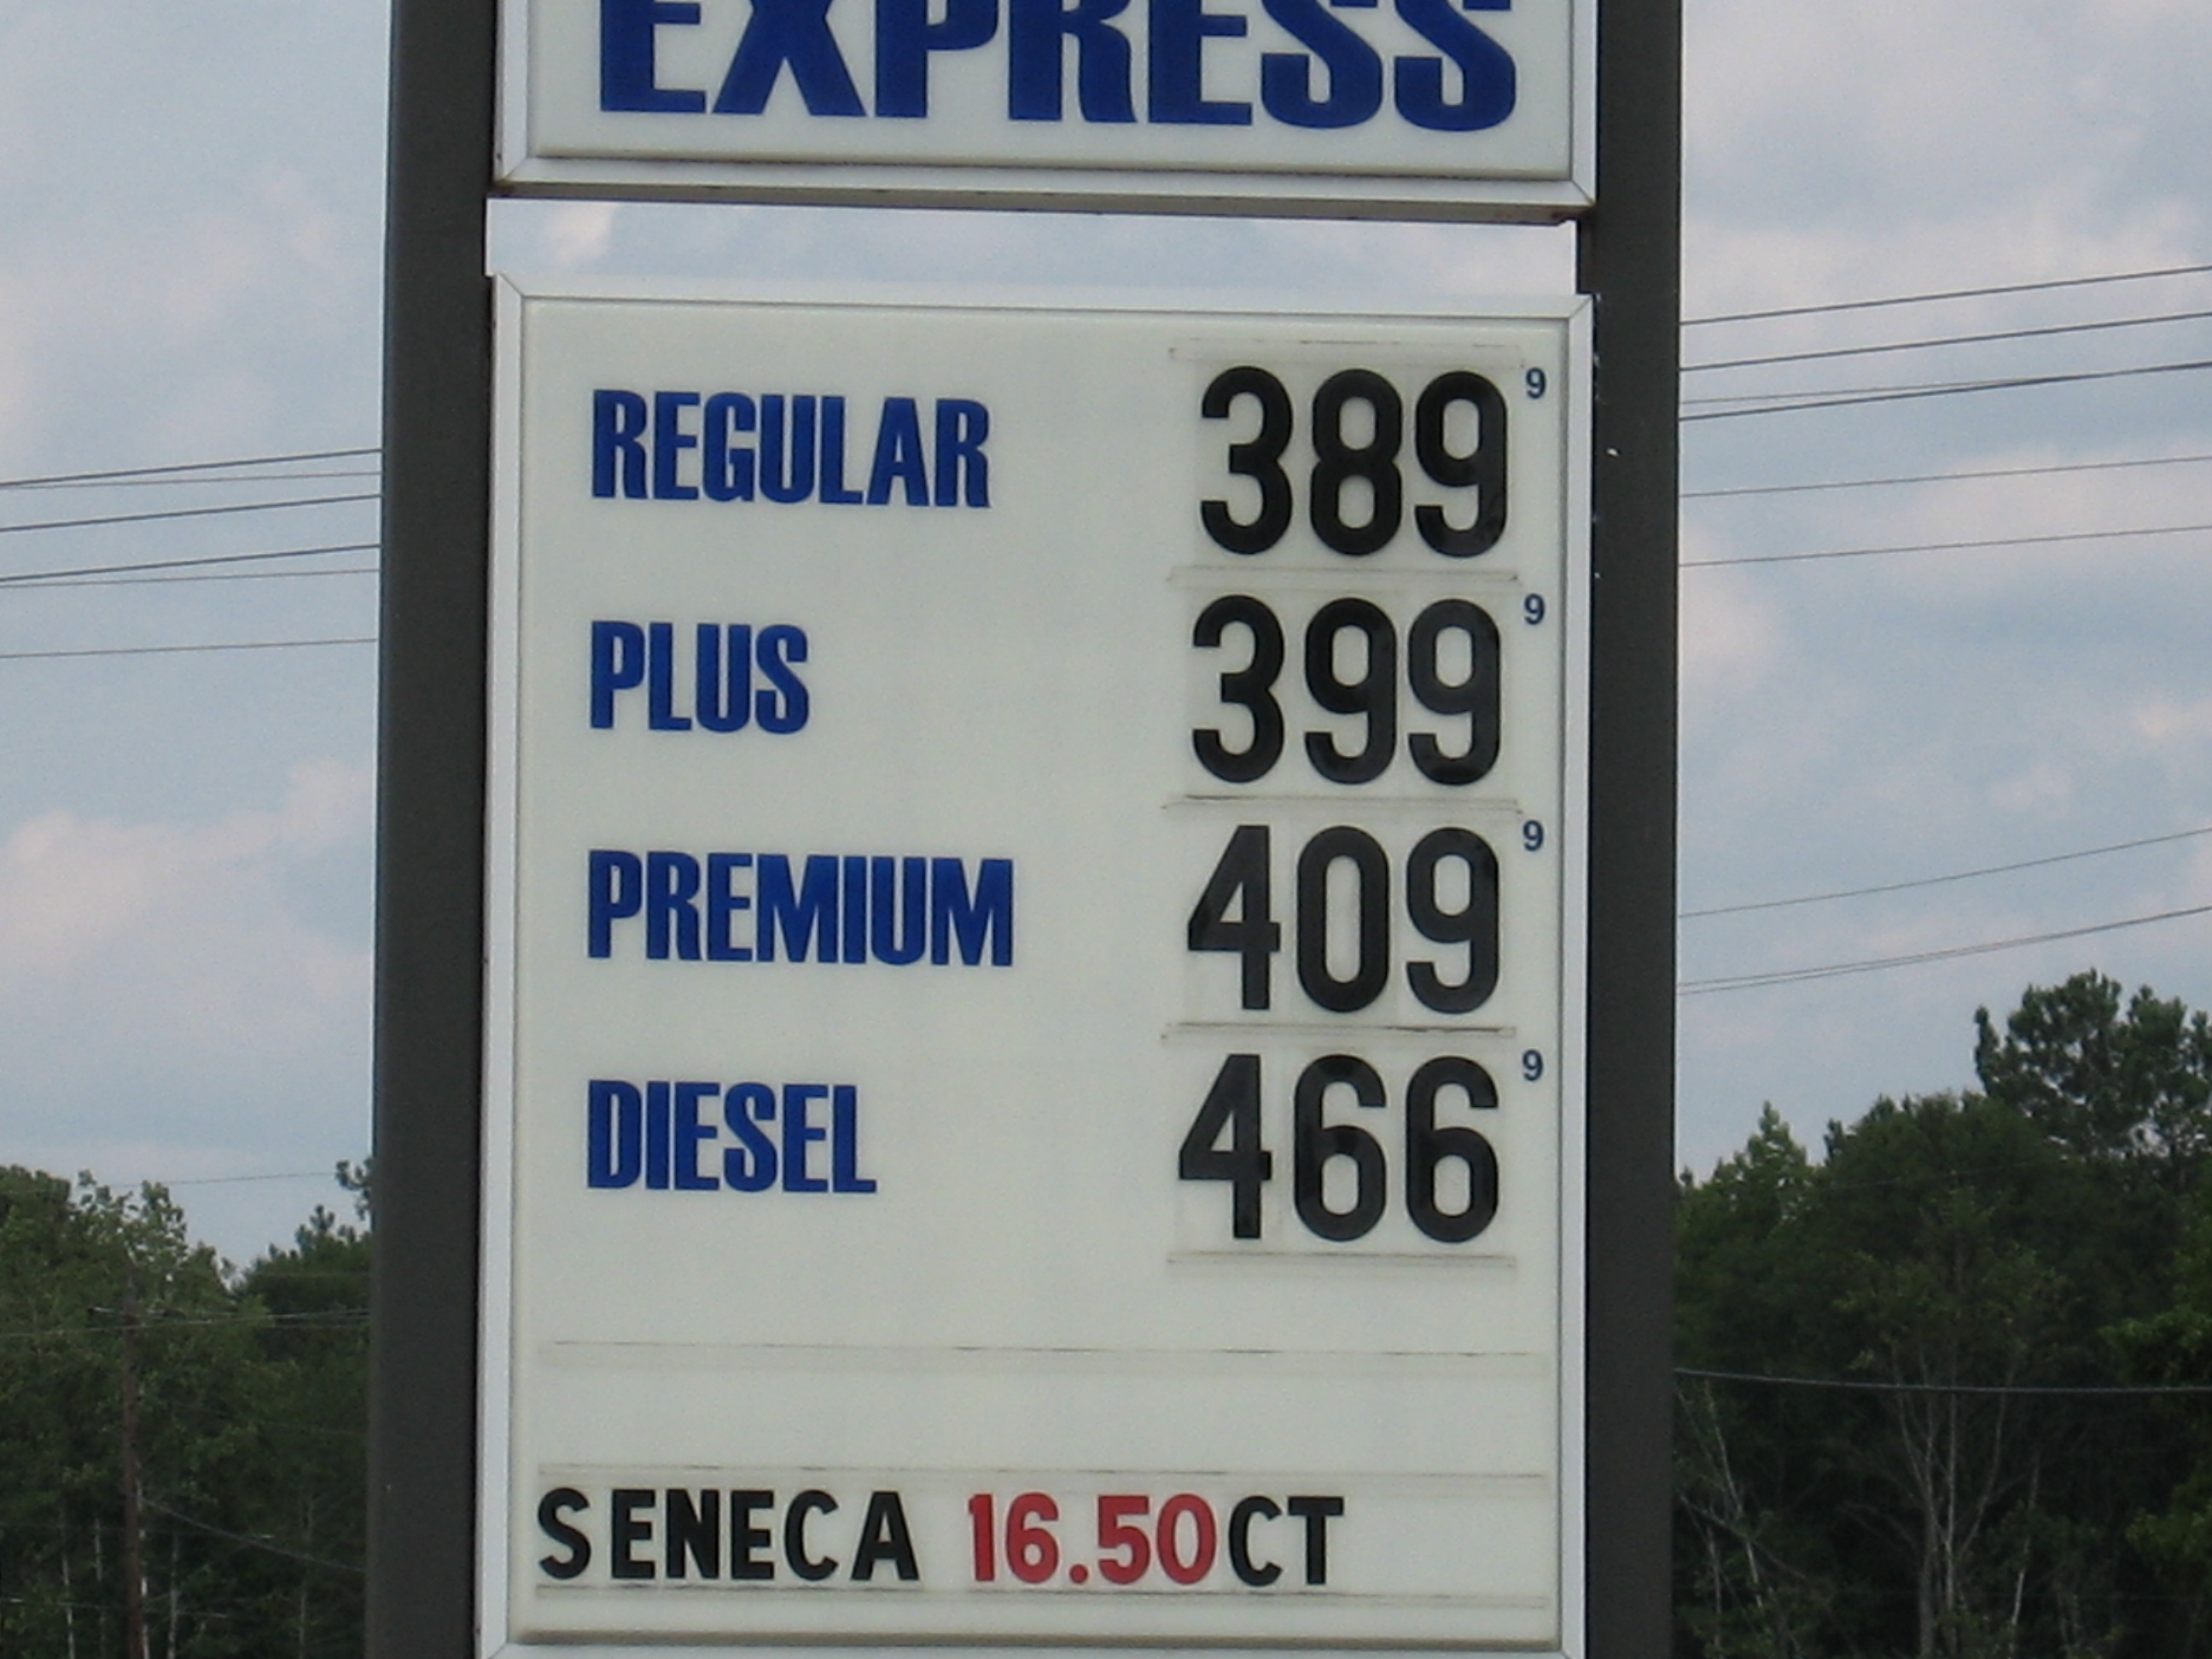 Lowest price in town? Don't believe it!